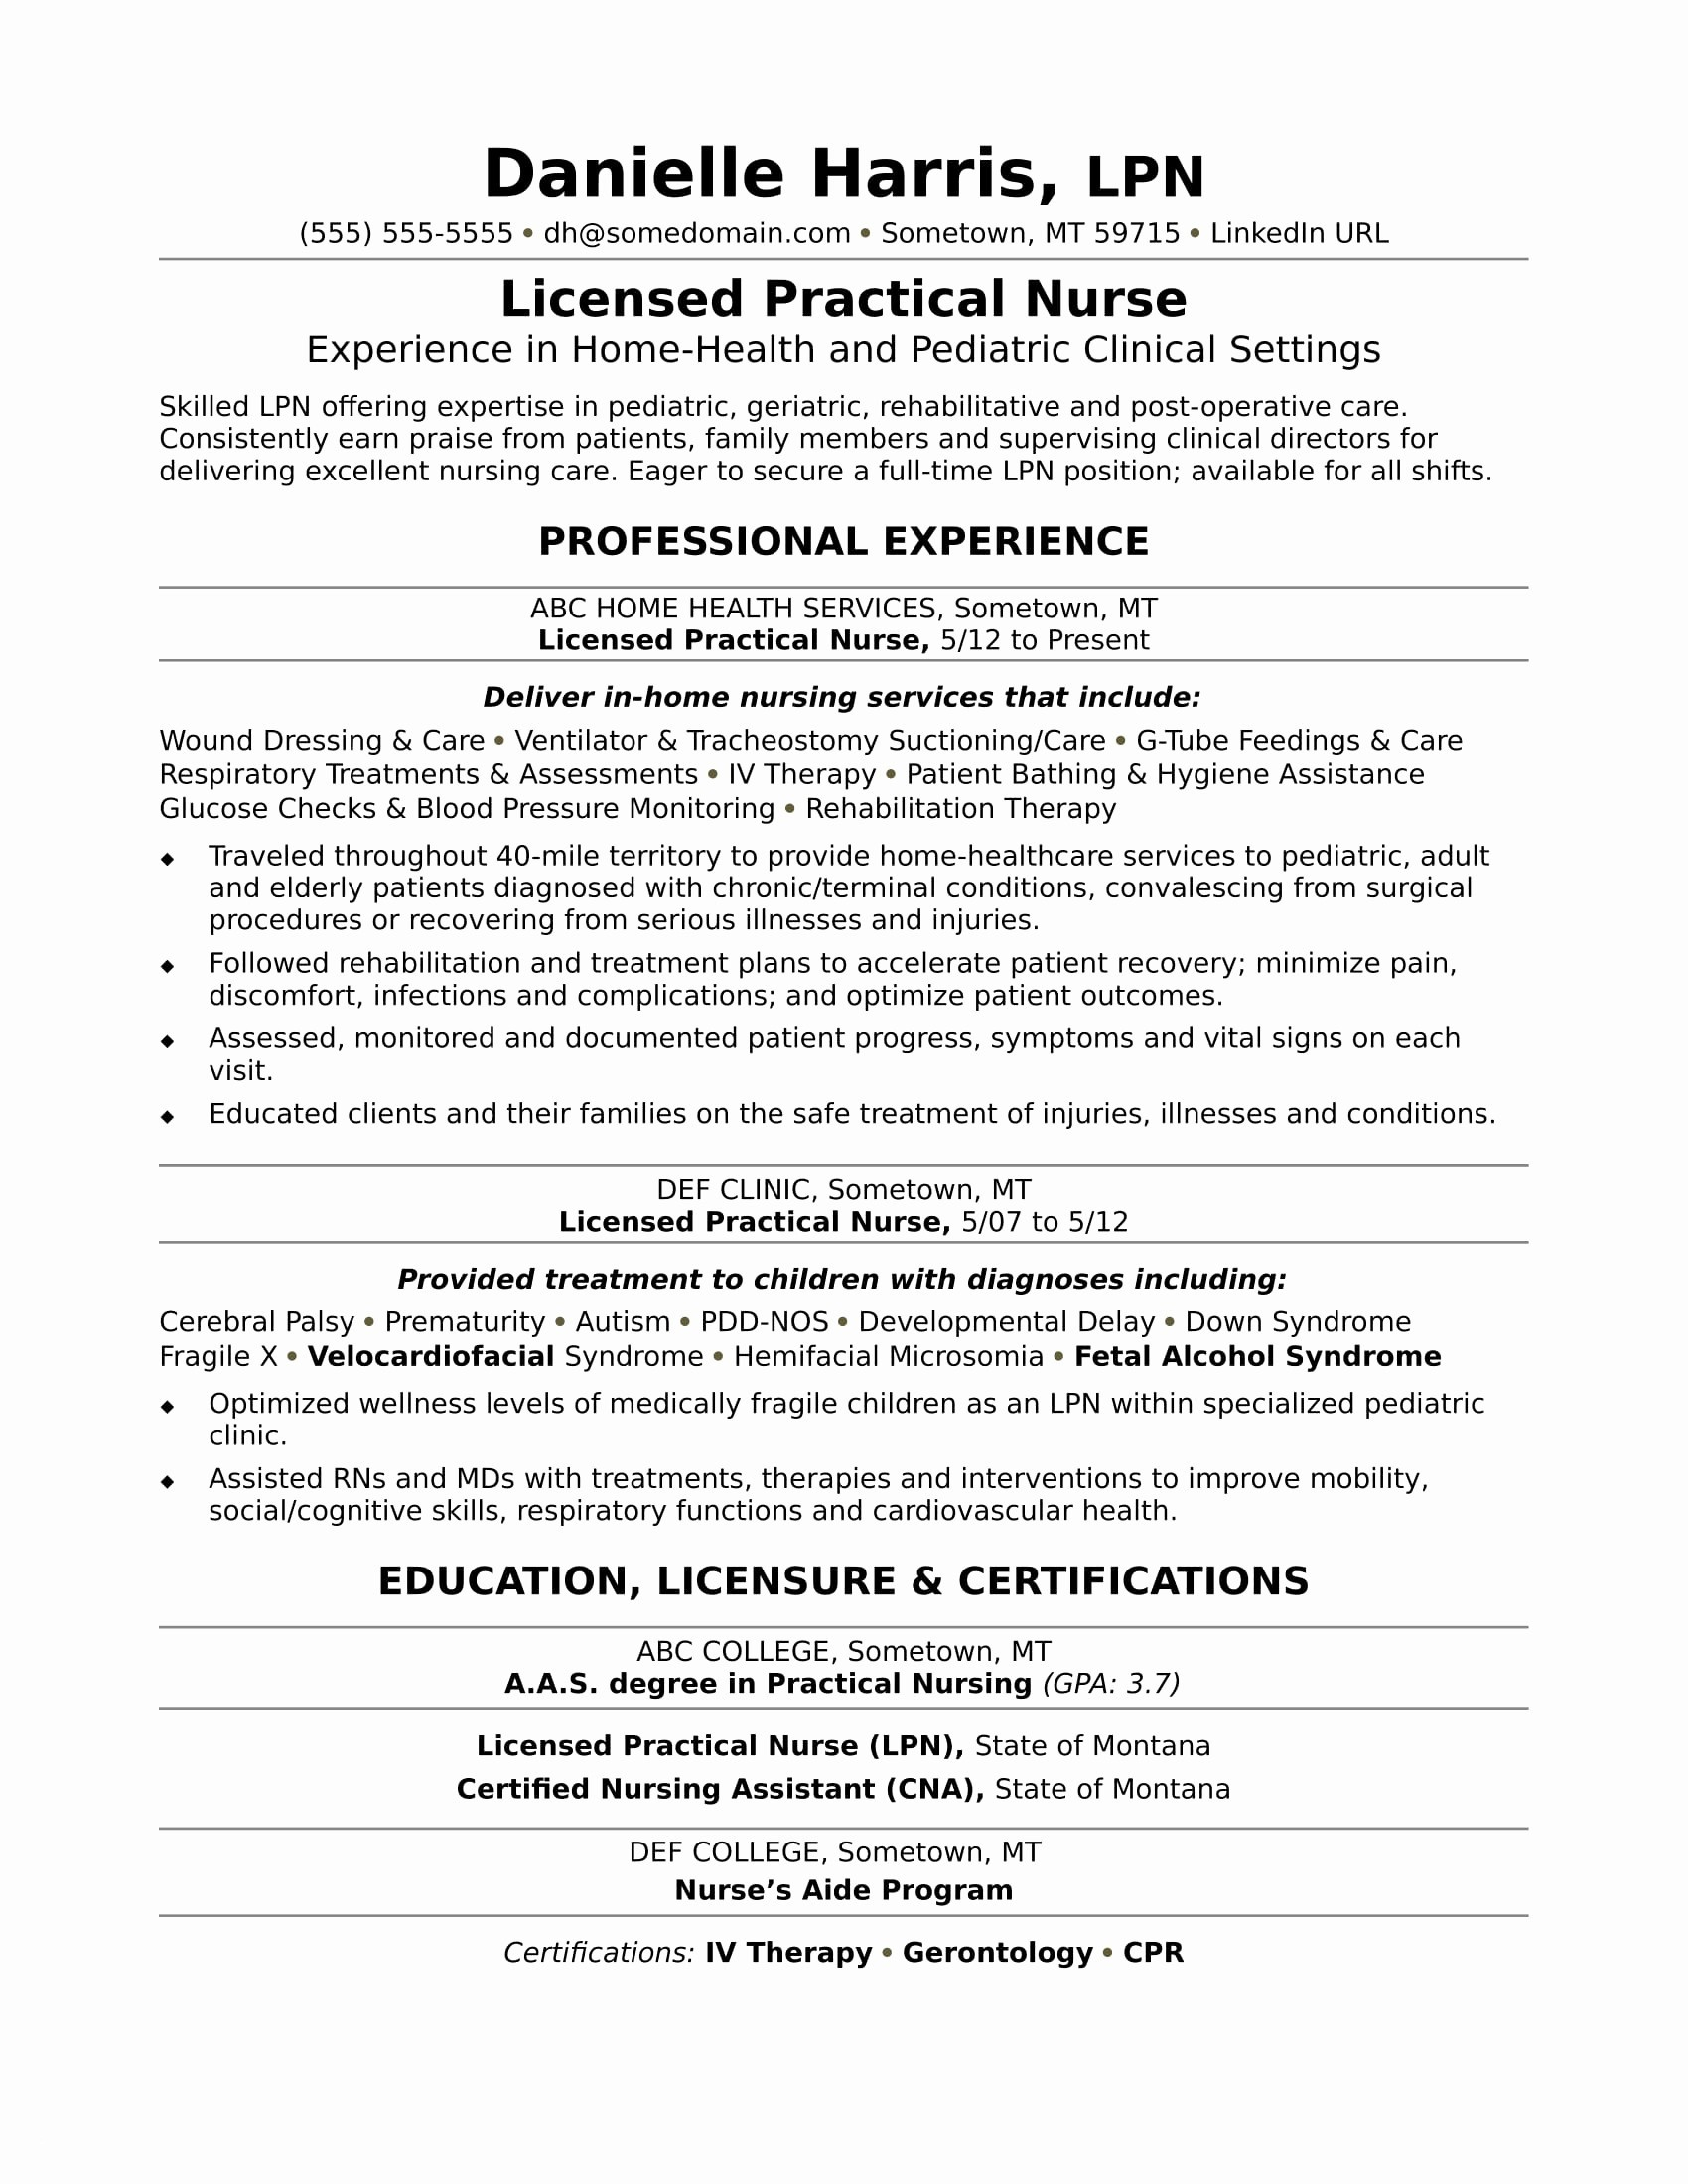 Resume Template for Nursing Student - Resume for Nursing Student Luxury Resume for Nurse Luxury New Nurse